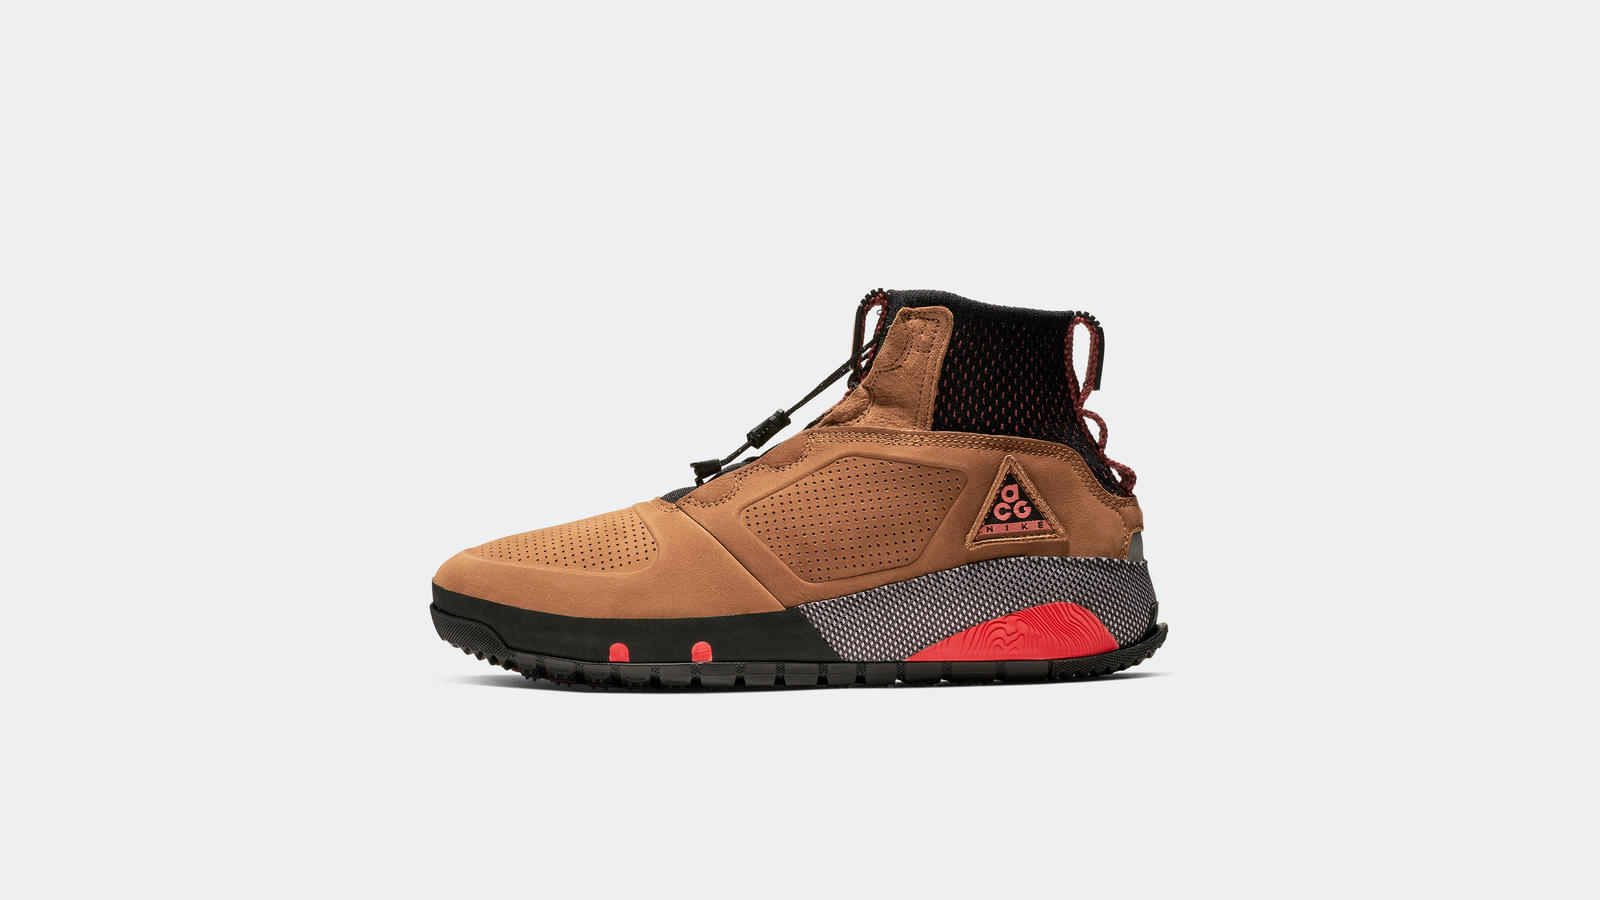 Acg rr brown 1 hd 1600